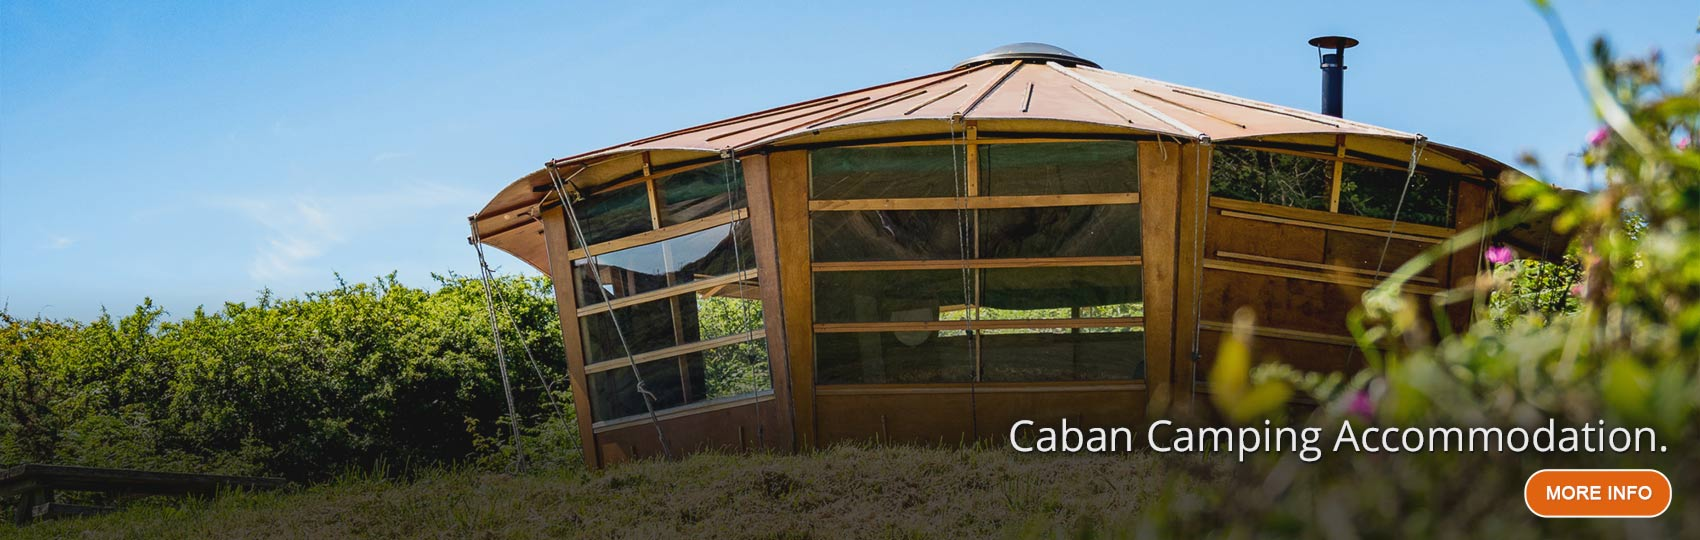 Caban camping hut with large observation windows